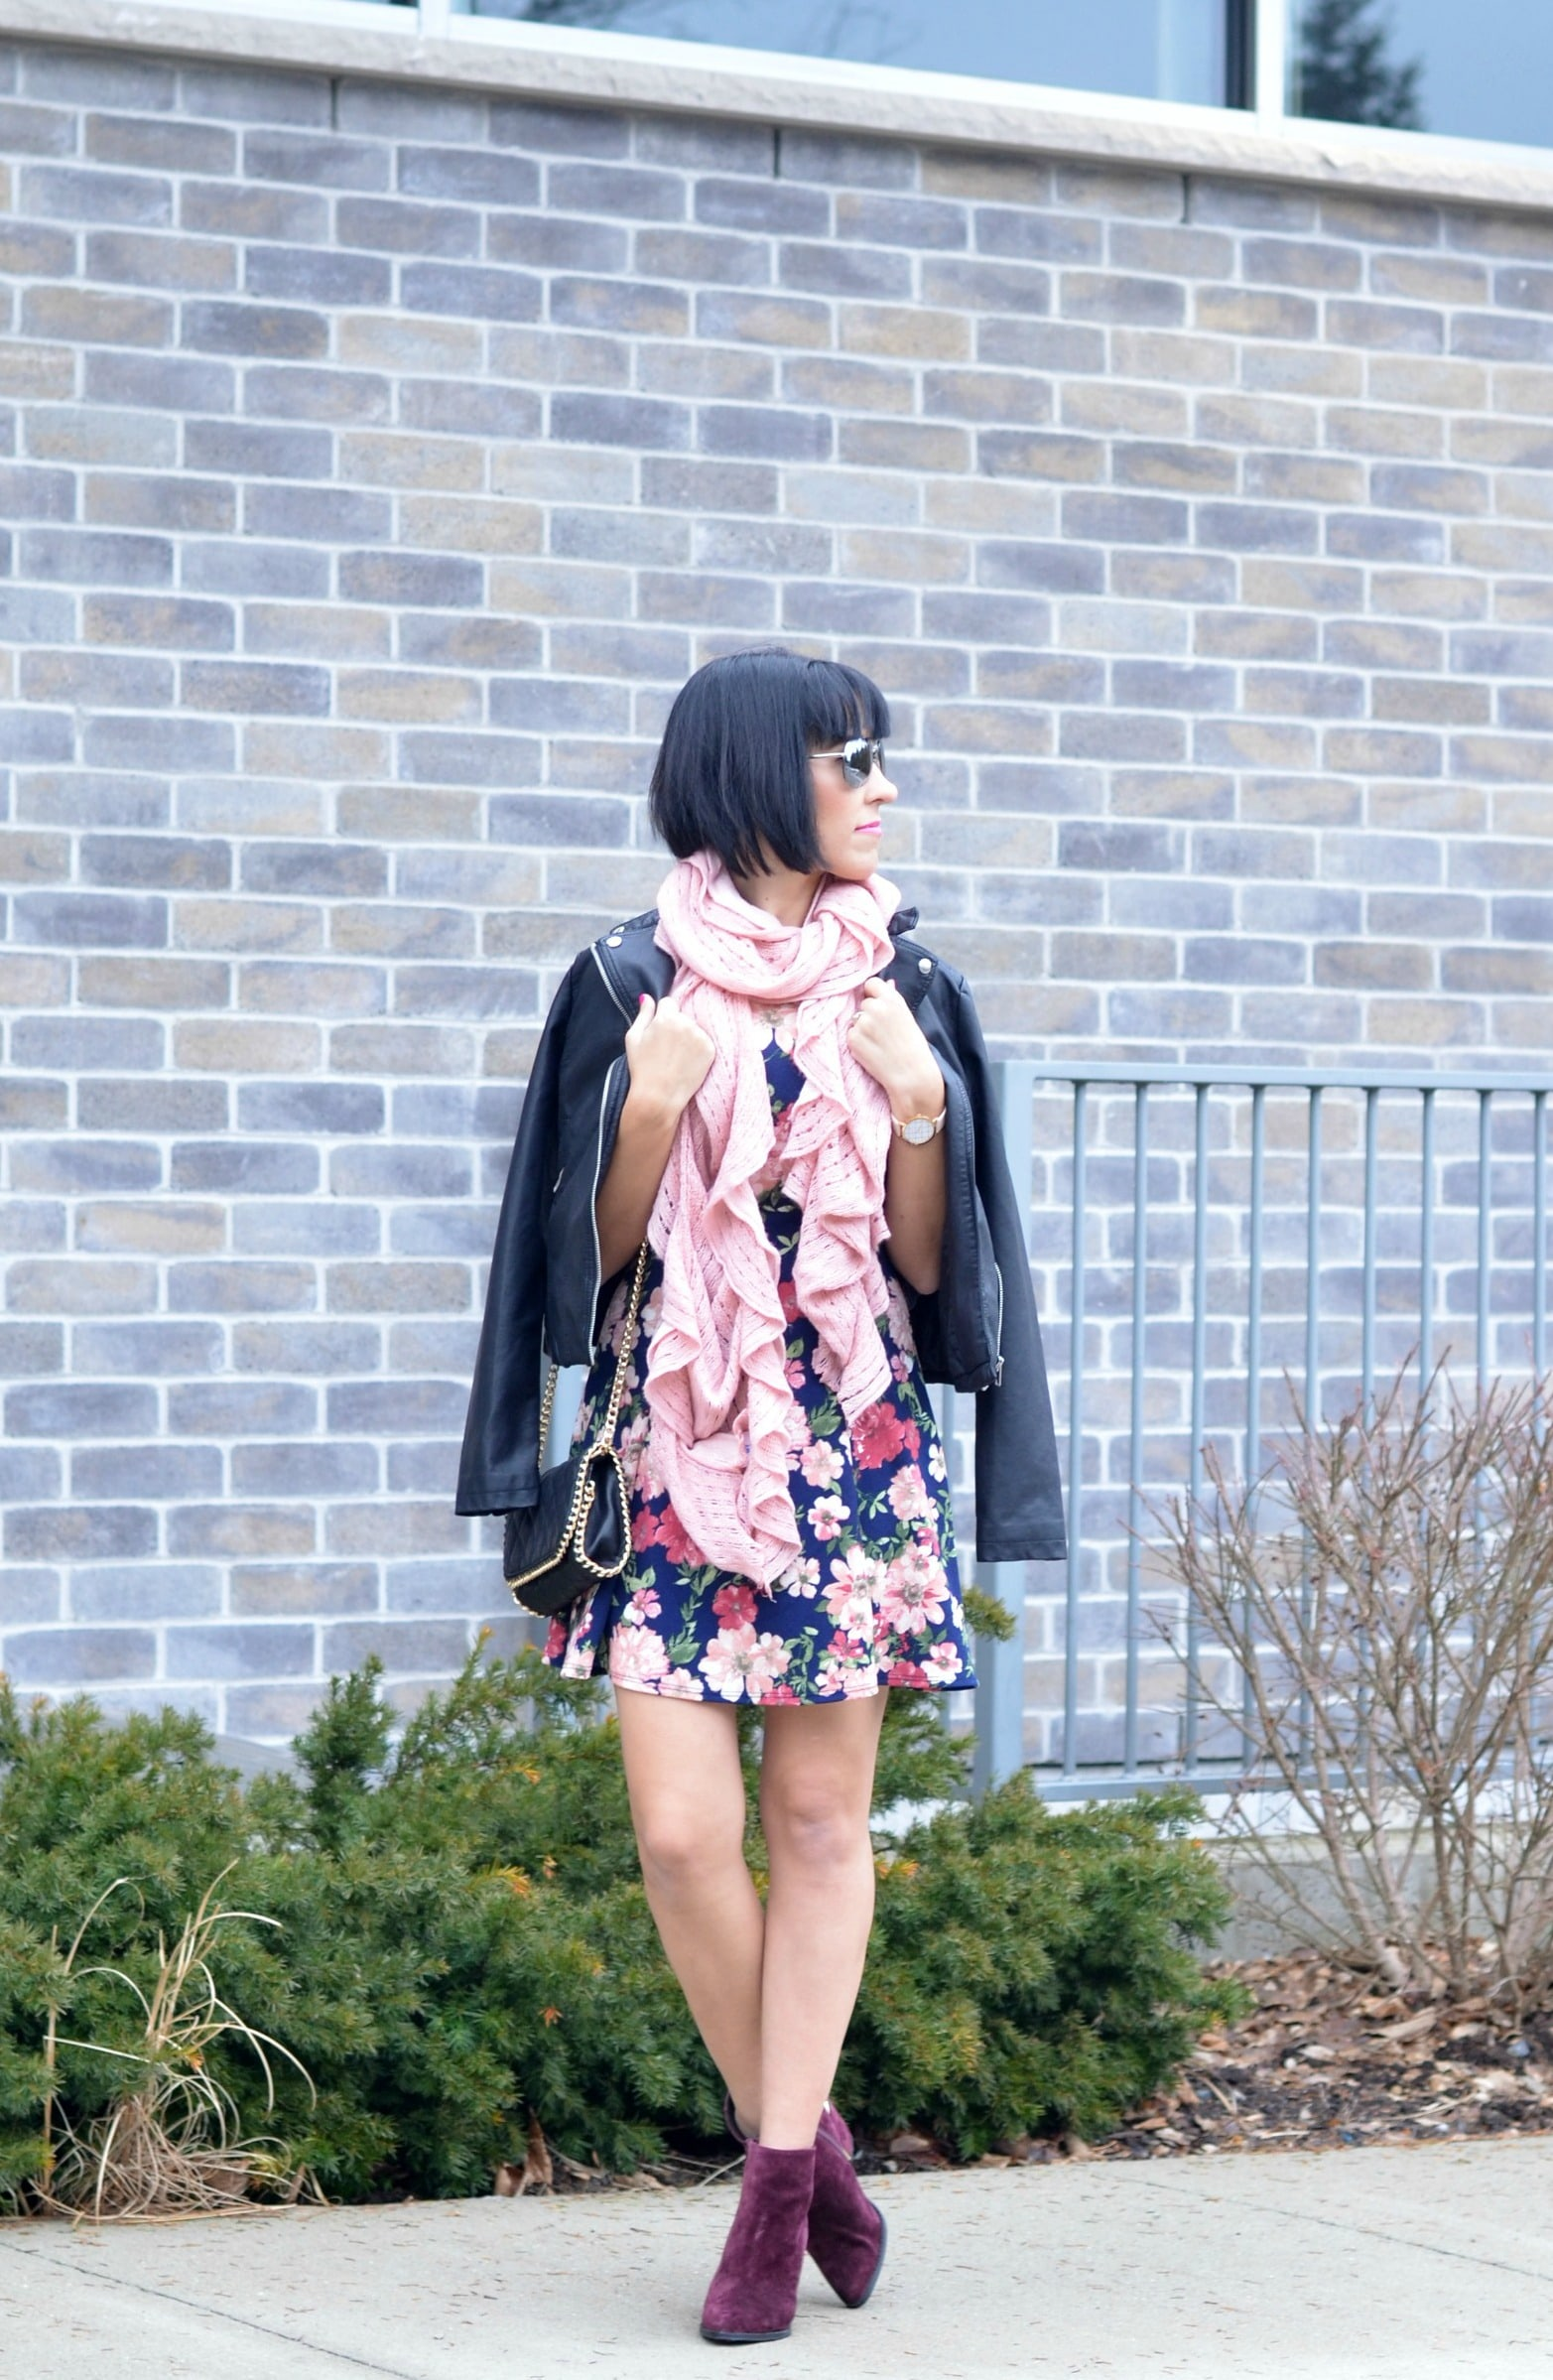 sears, sears canada, floral dress, how to style floral dress, winter floral dress, what to wear on valentine's day, canadian fashionista, fashion blogger